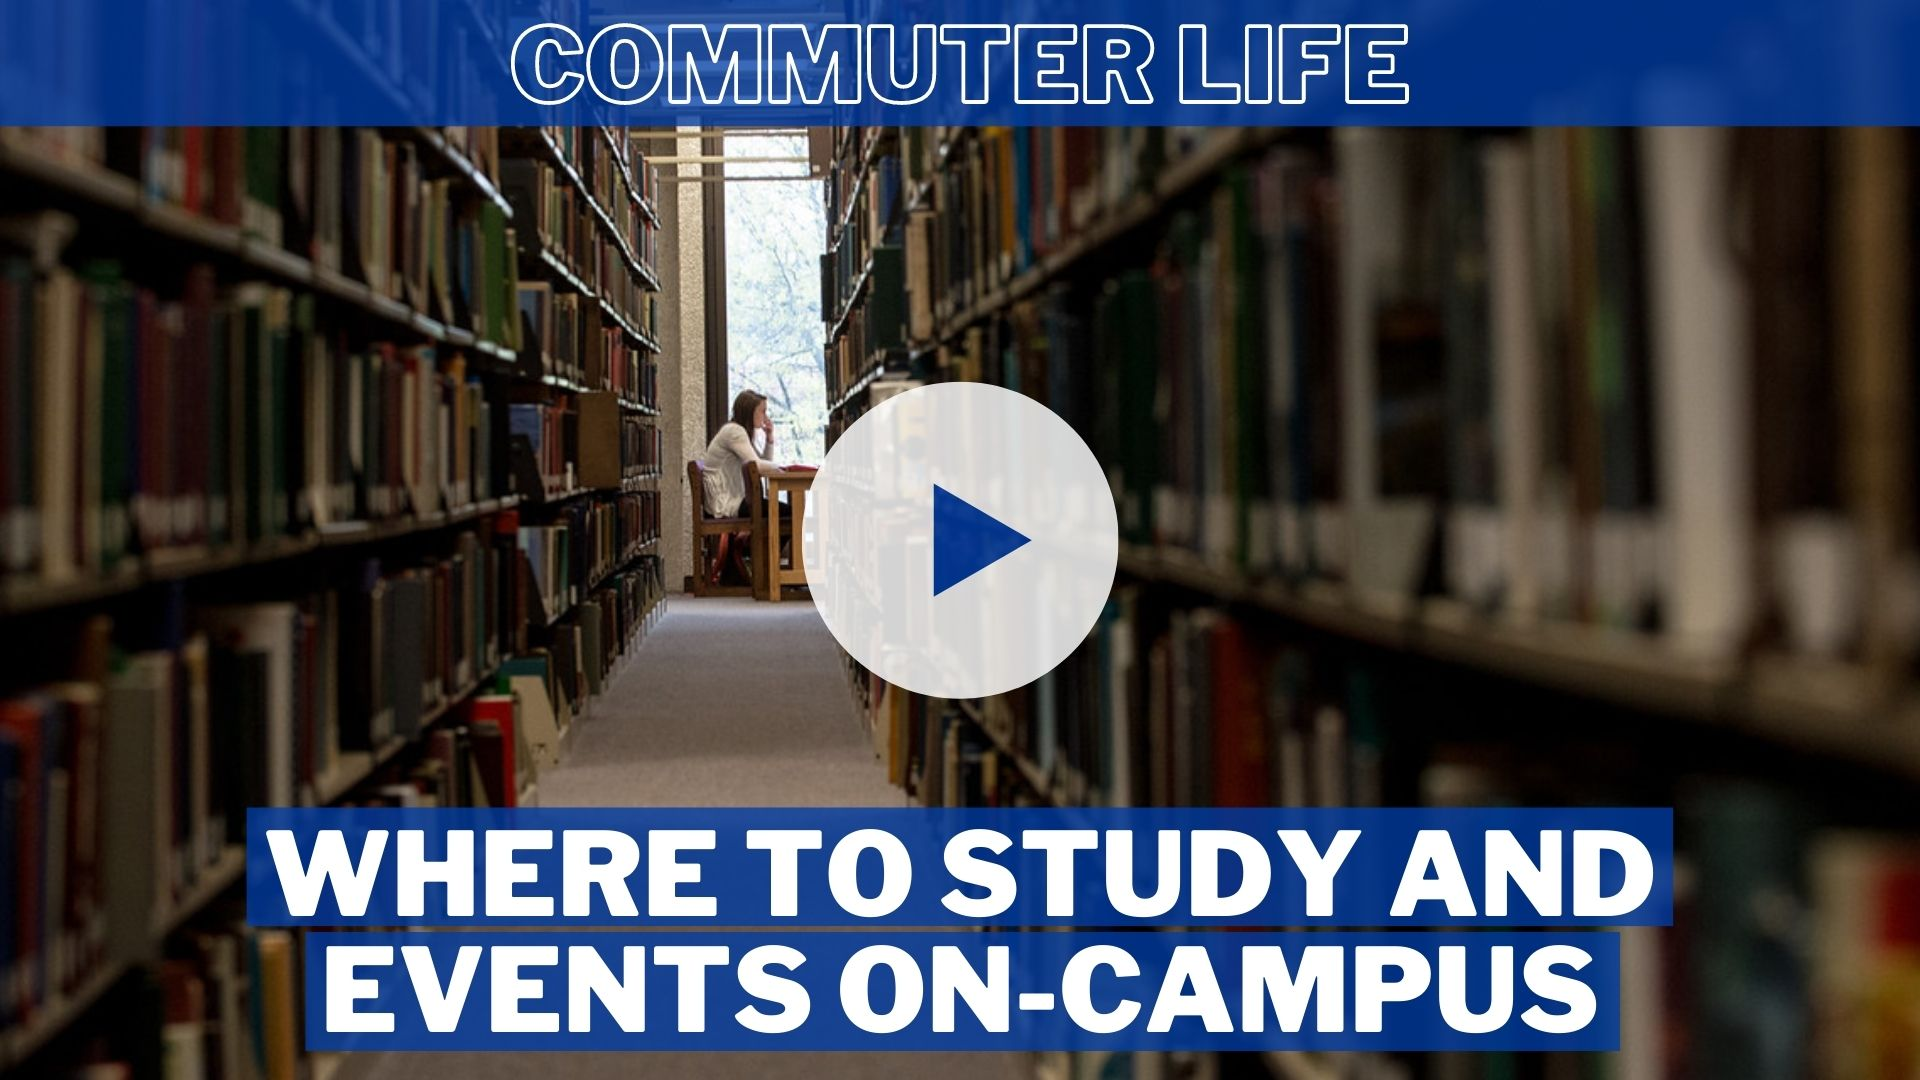 Where to Study and Events On-Campus (Commuter Life)